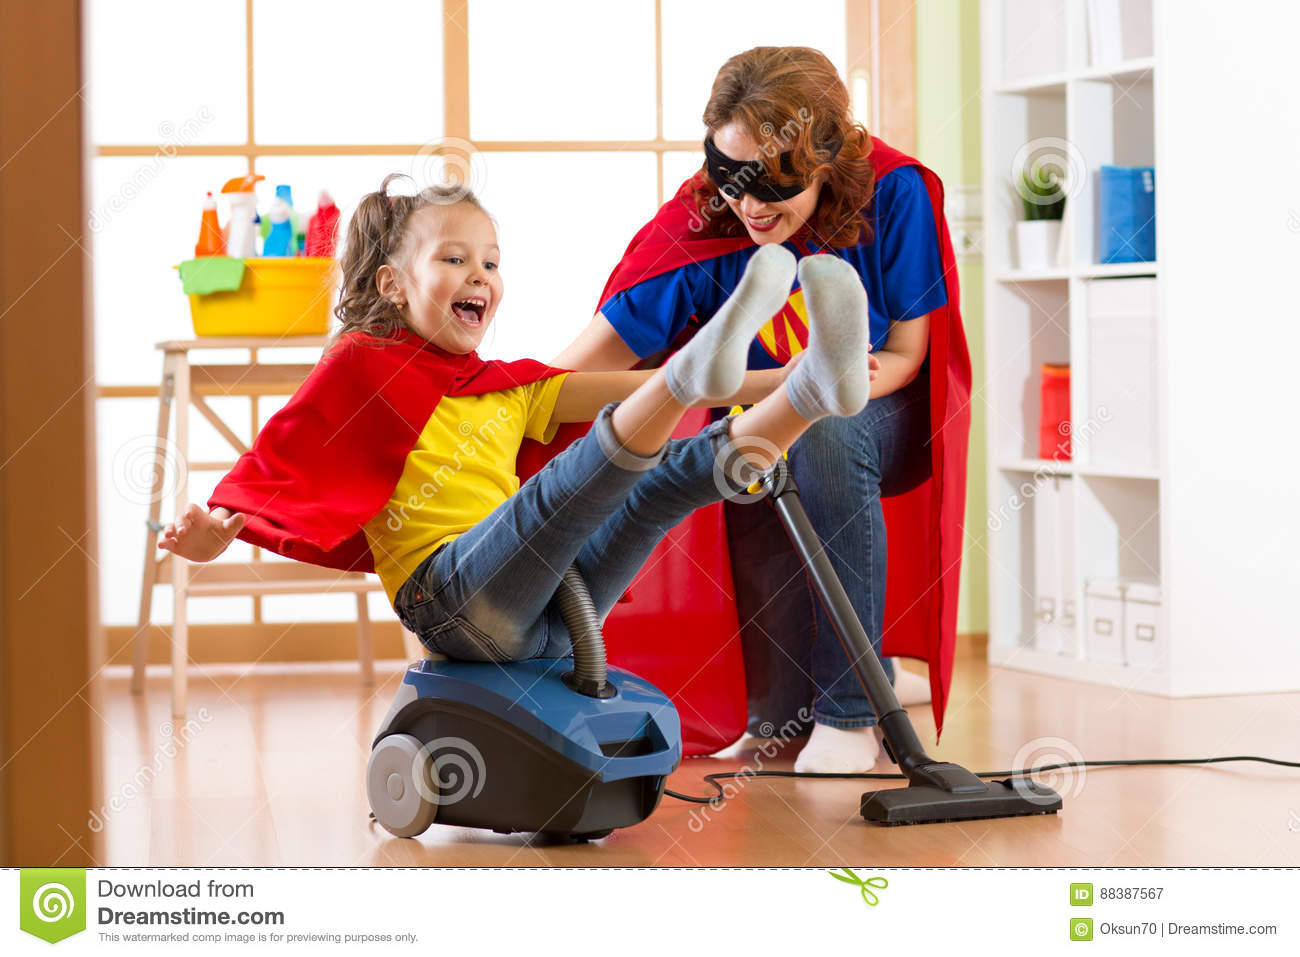 Super hero kid flying on vacuum cleaner. Mother and child daughter cleaning the room and have a fun